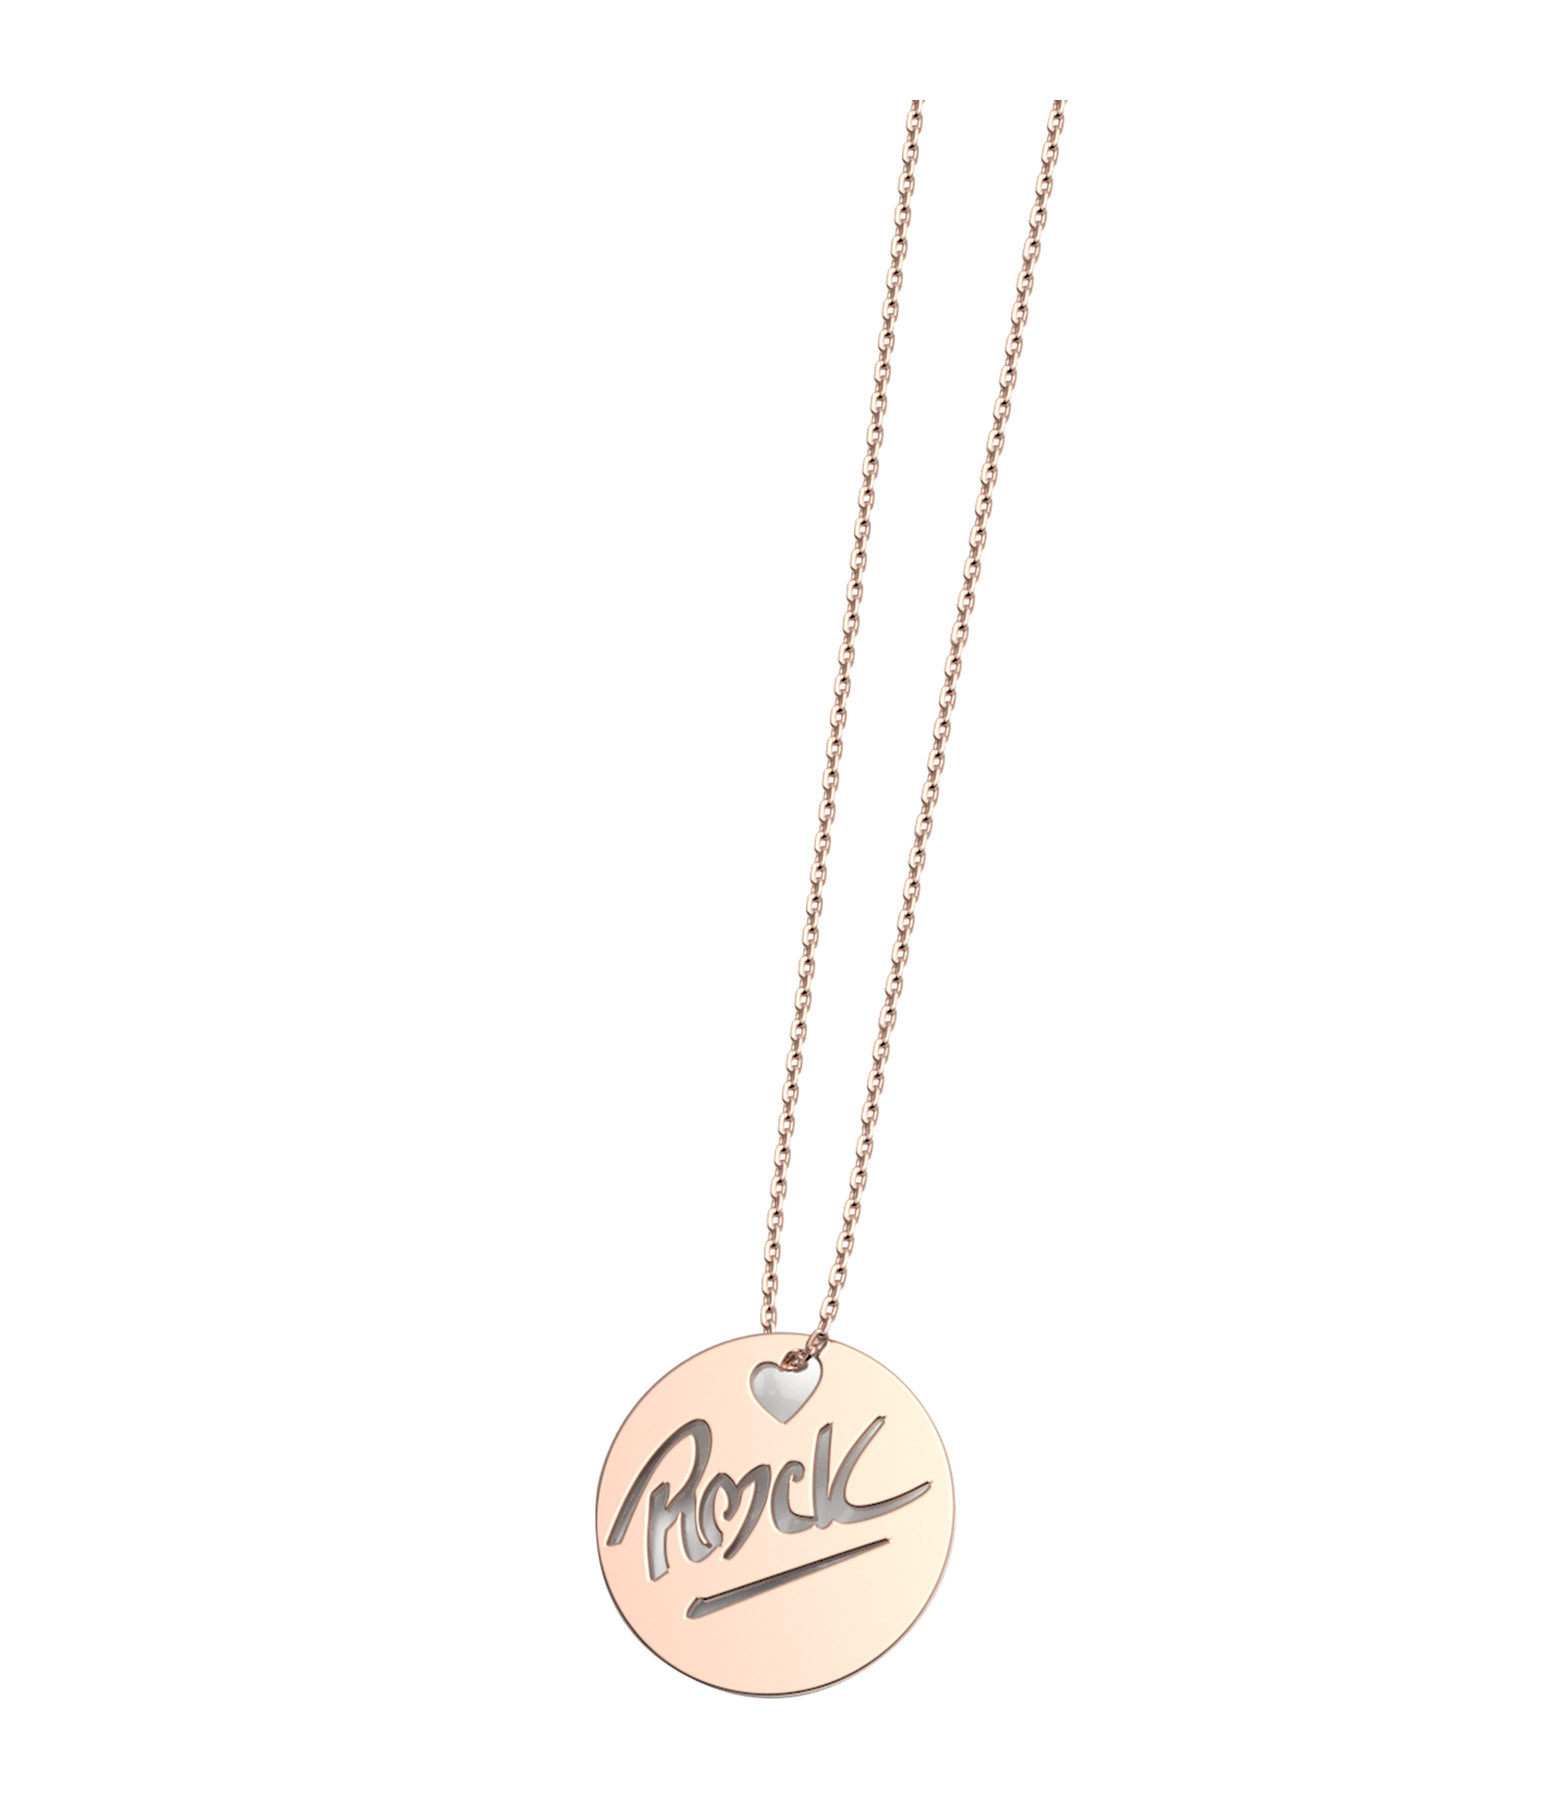 NAVA JOAILLERIE - Collier Rond Rock S Or Rose